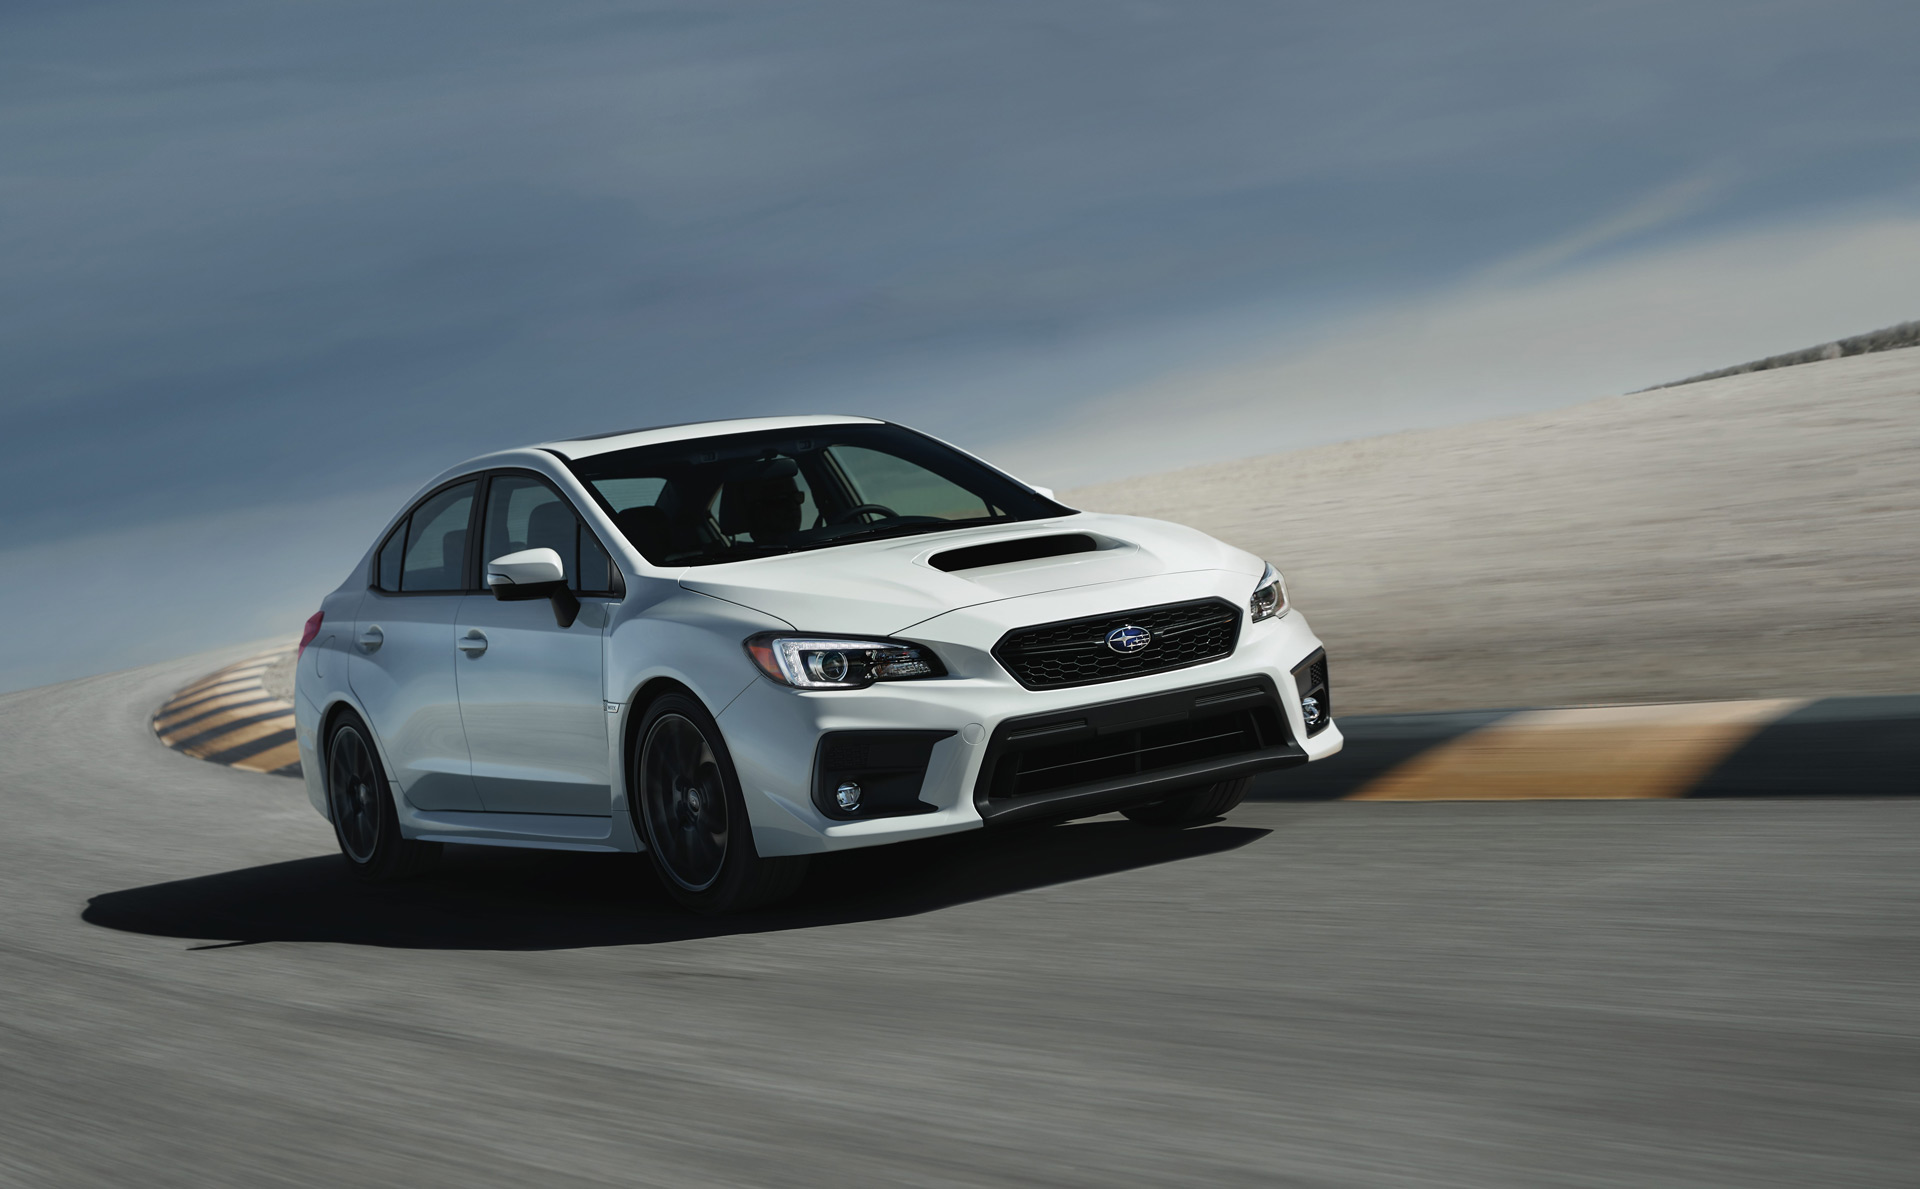 Used Subaru Wrx Sti For Sale >> 2020 Subaru Wrx Review Ratings Specs Prices And Photos